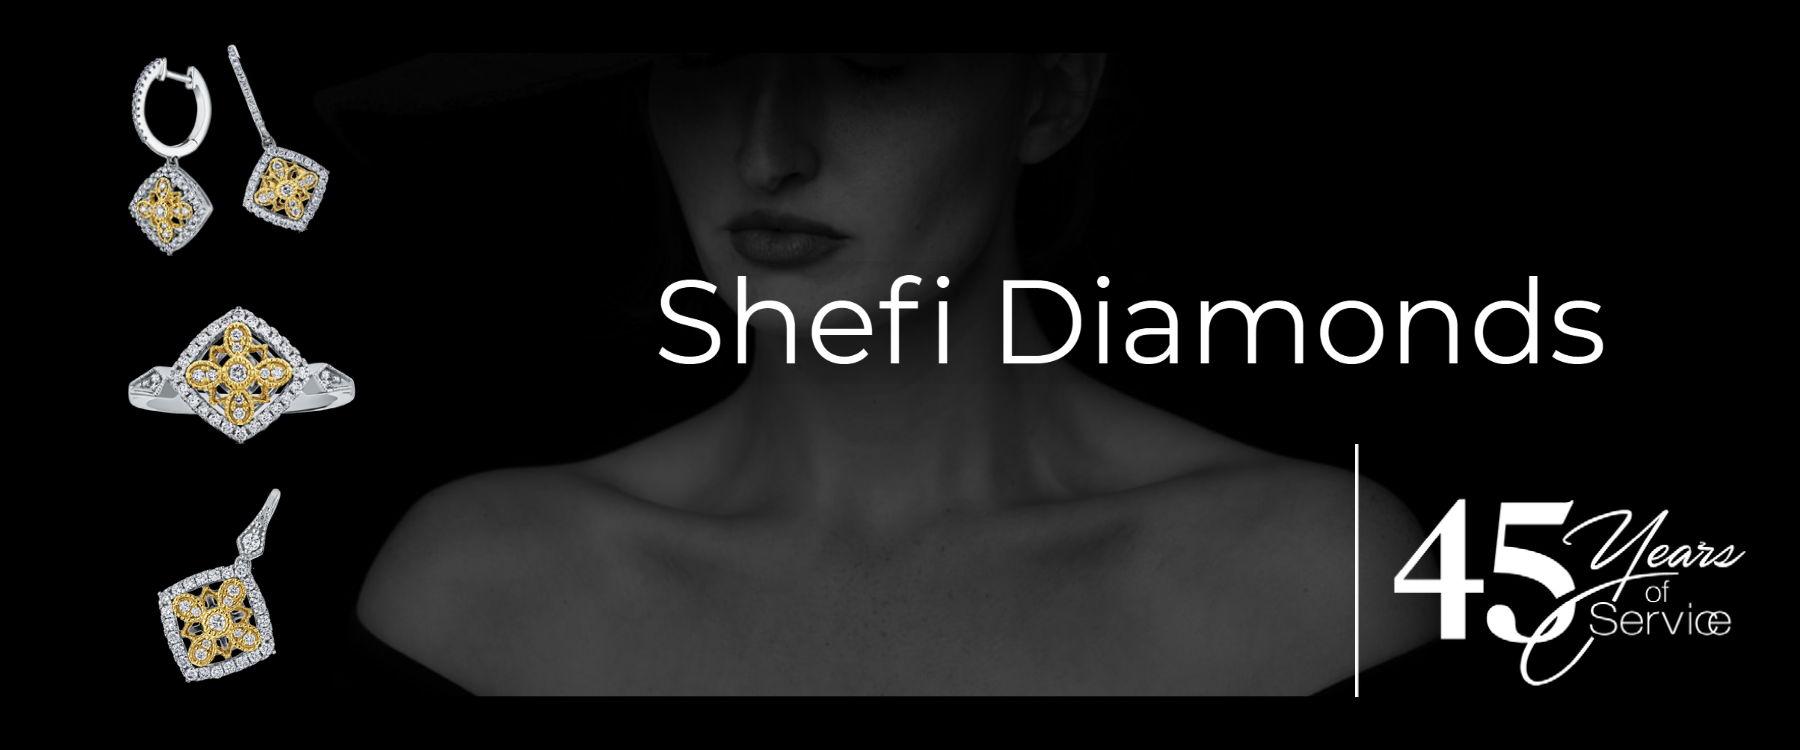 SHEFI DIAMONDS